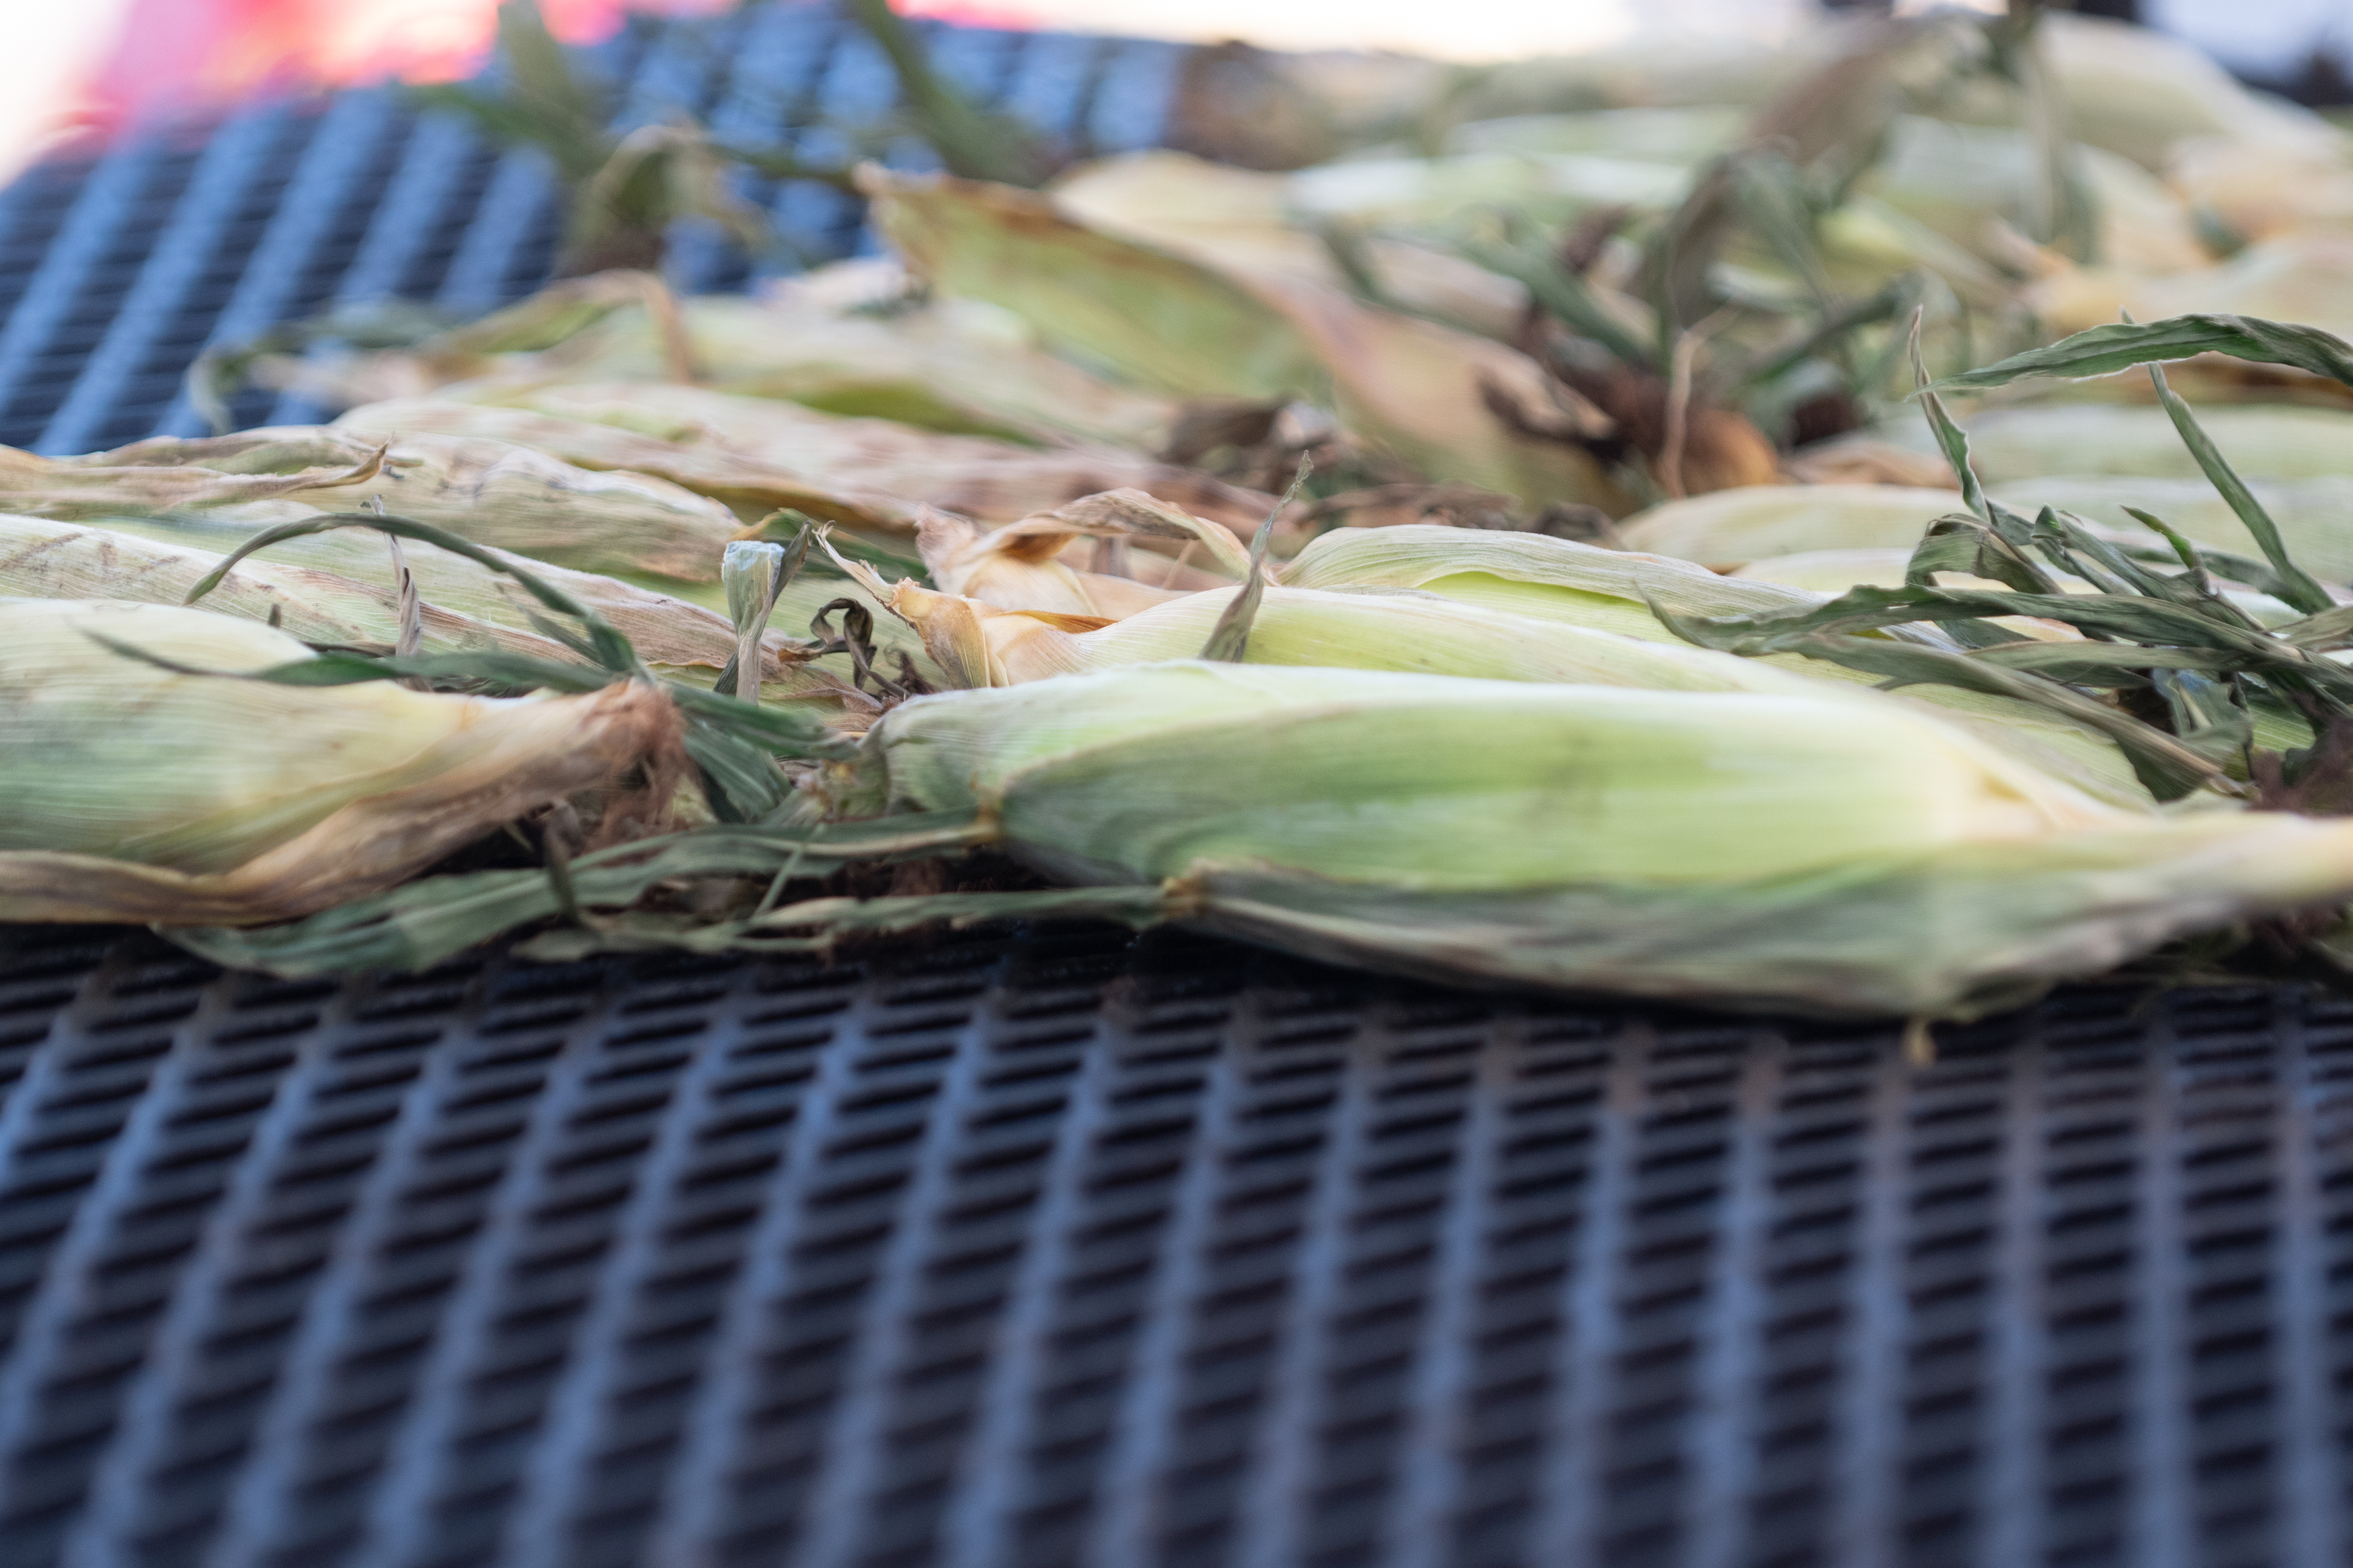 With corn prices rising, consumers should expect that higher cost to be passed along to them this summer in the form of higher prices on corn tortillas and any other corn products.